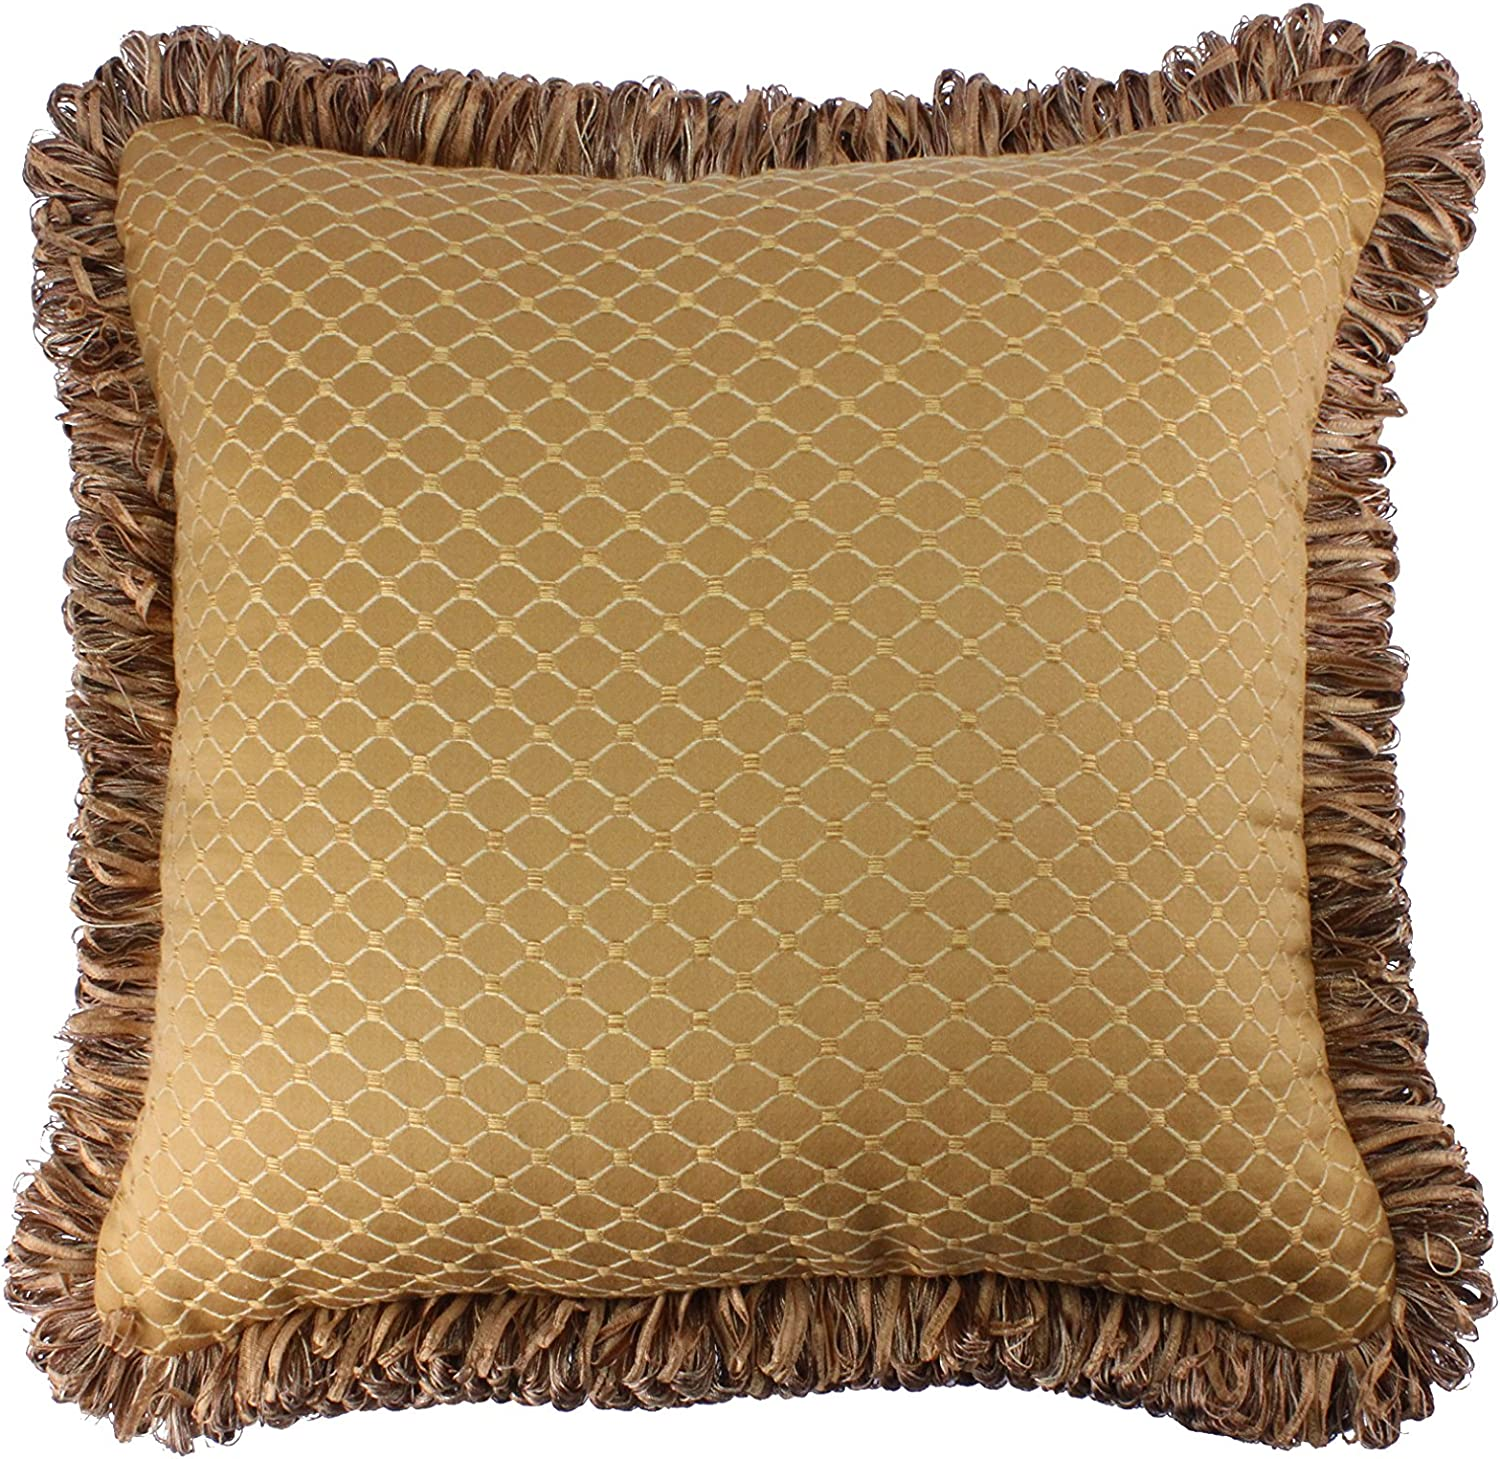 Classic Modern Silk Cushion With Diamond Pattern Design Decorative Couch Bed Throw Pillow Kitchen Dining